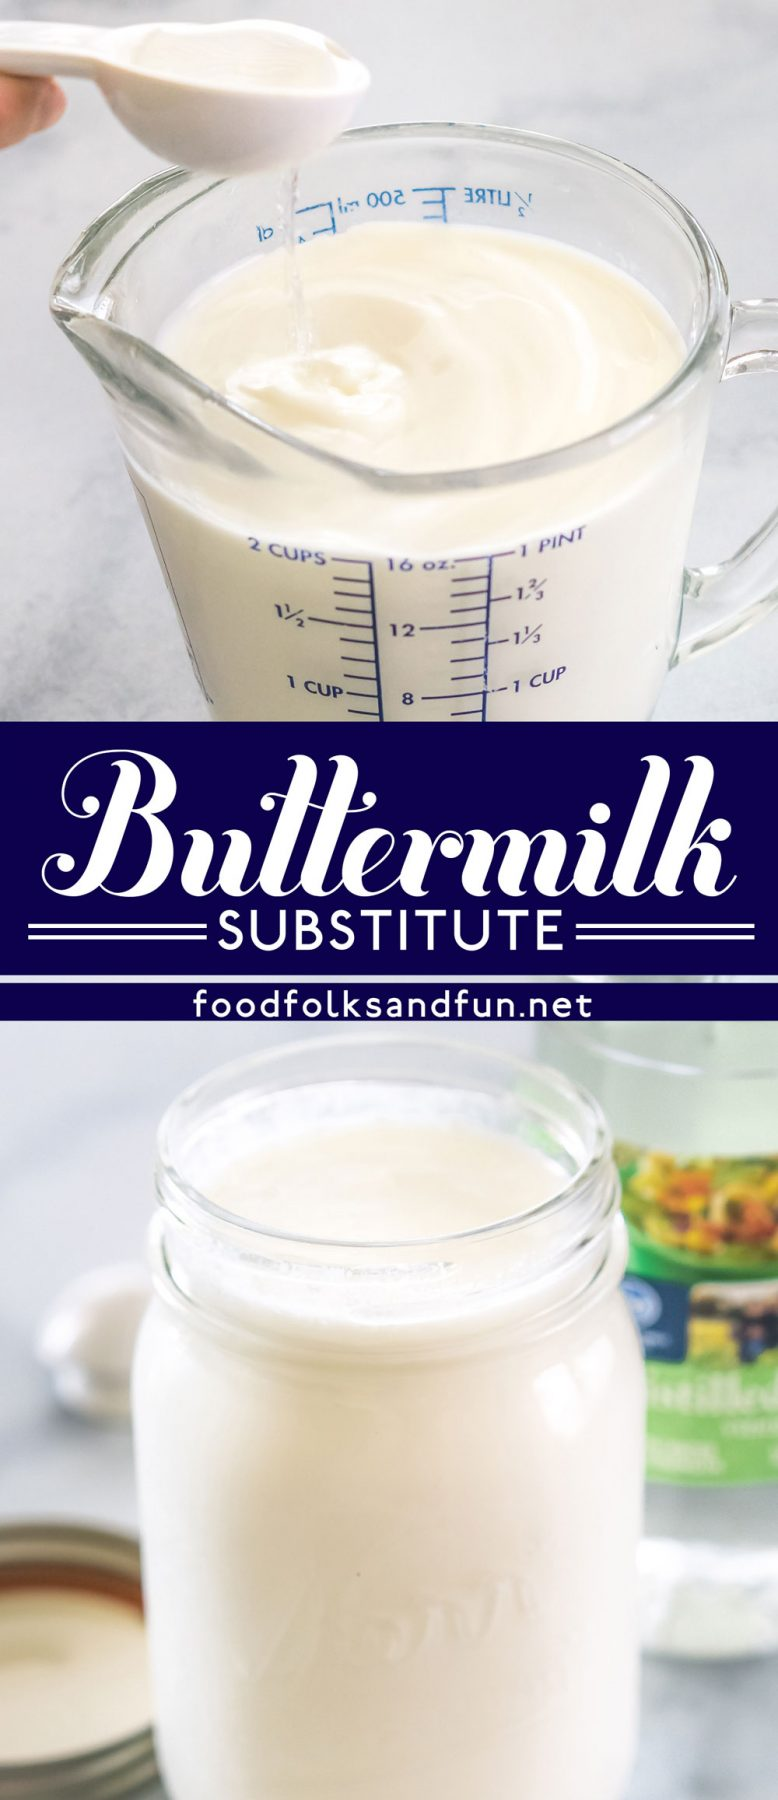 Buttermilk substitute collage with text overlay for Pinterest